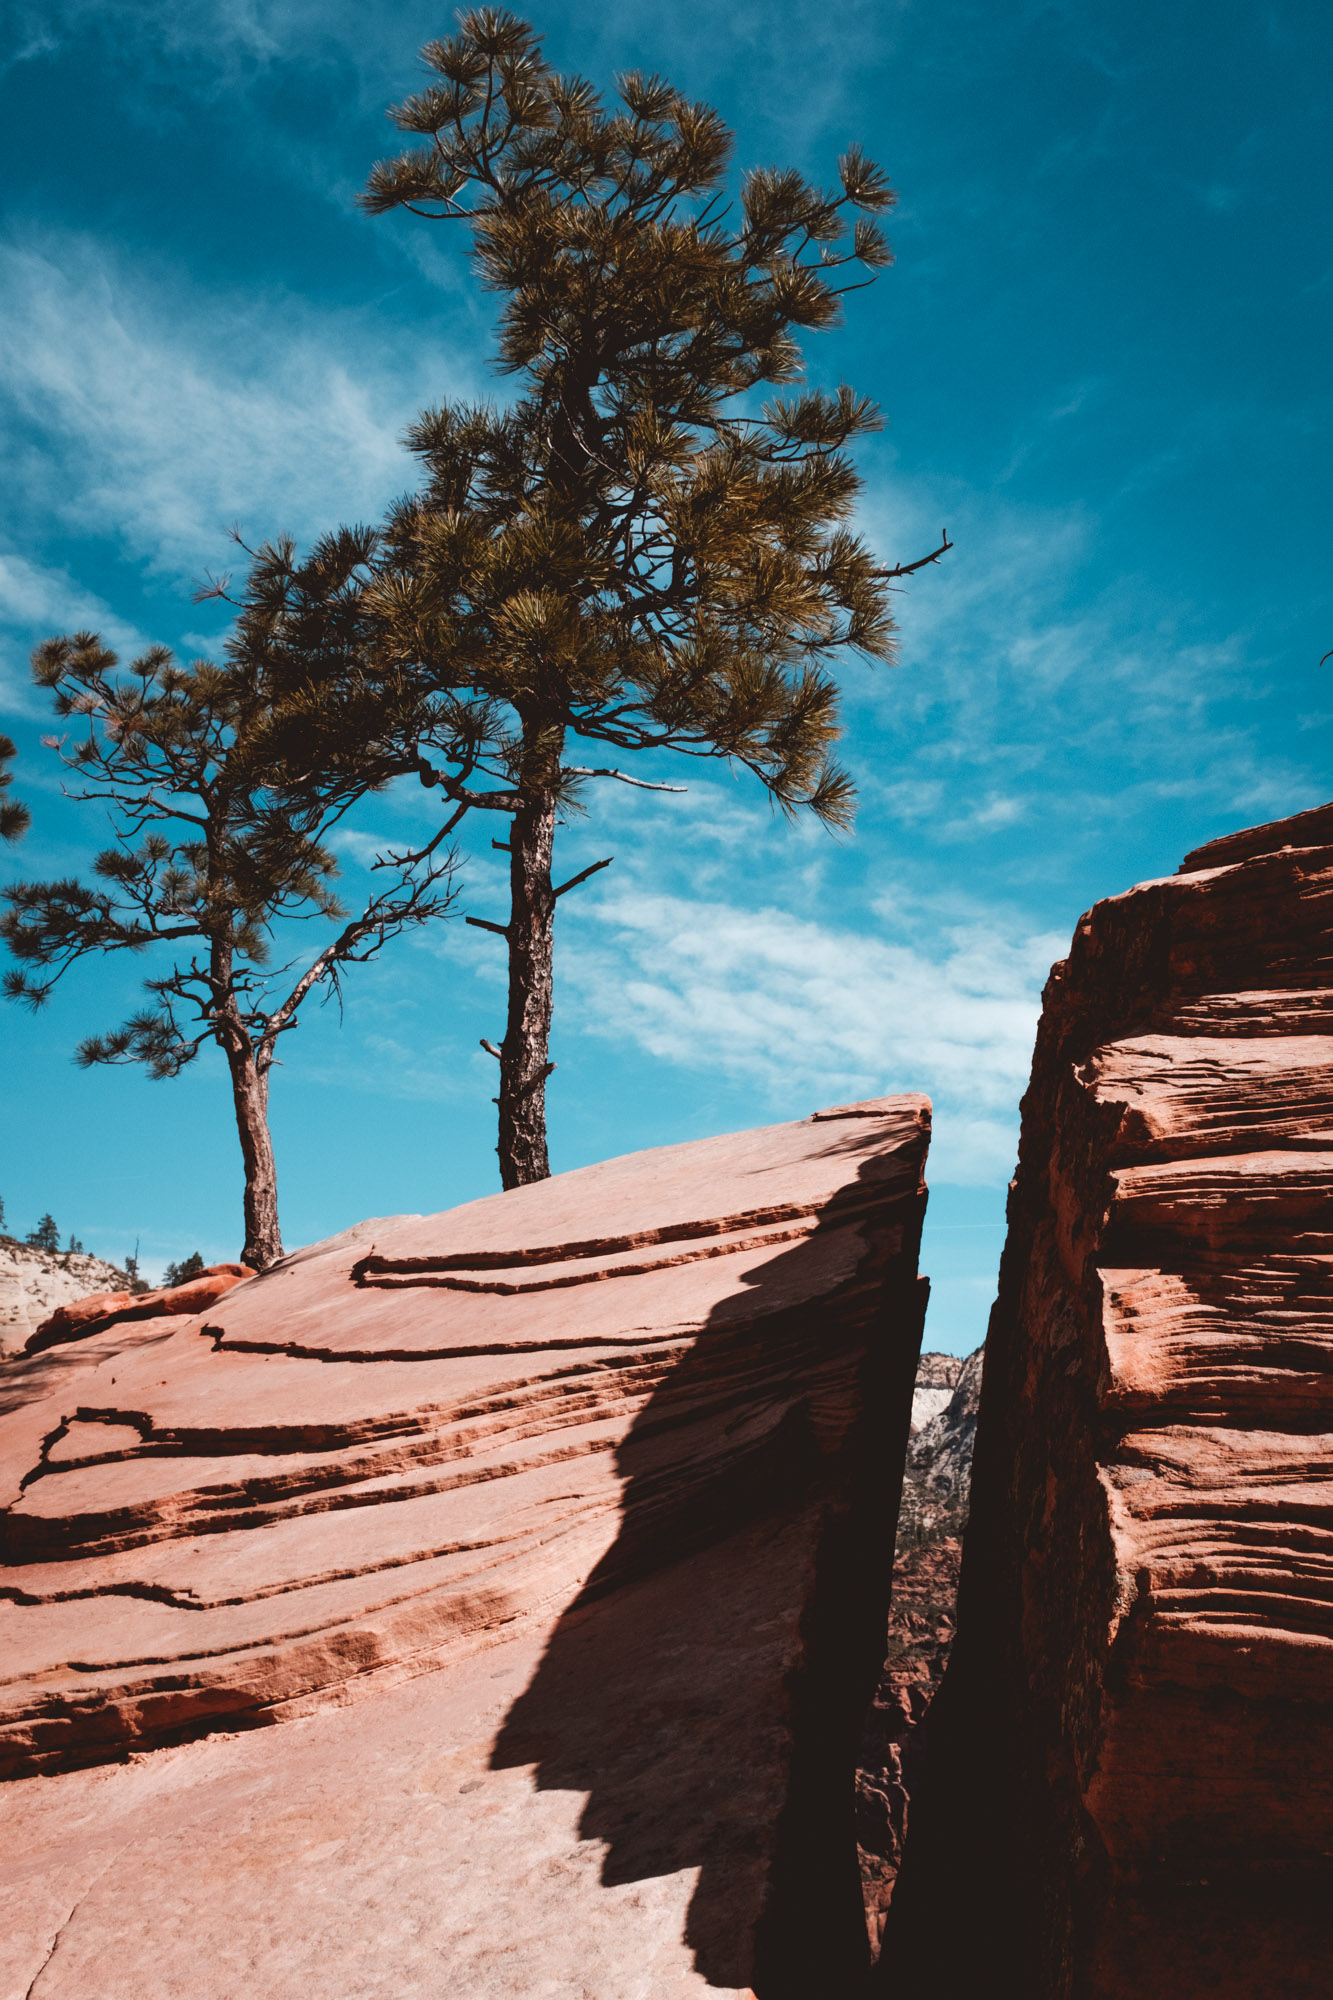 trees-rock-zion-national-park-utah